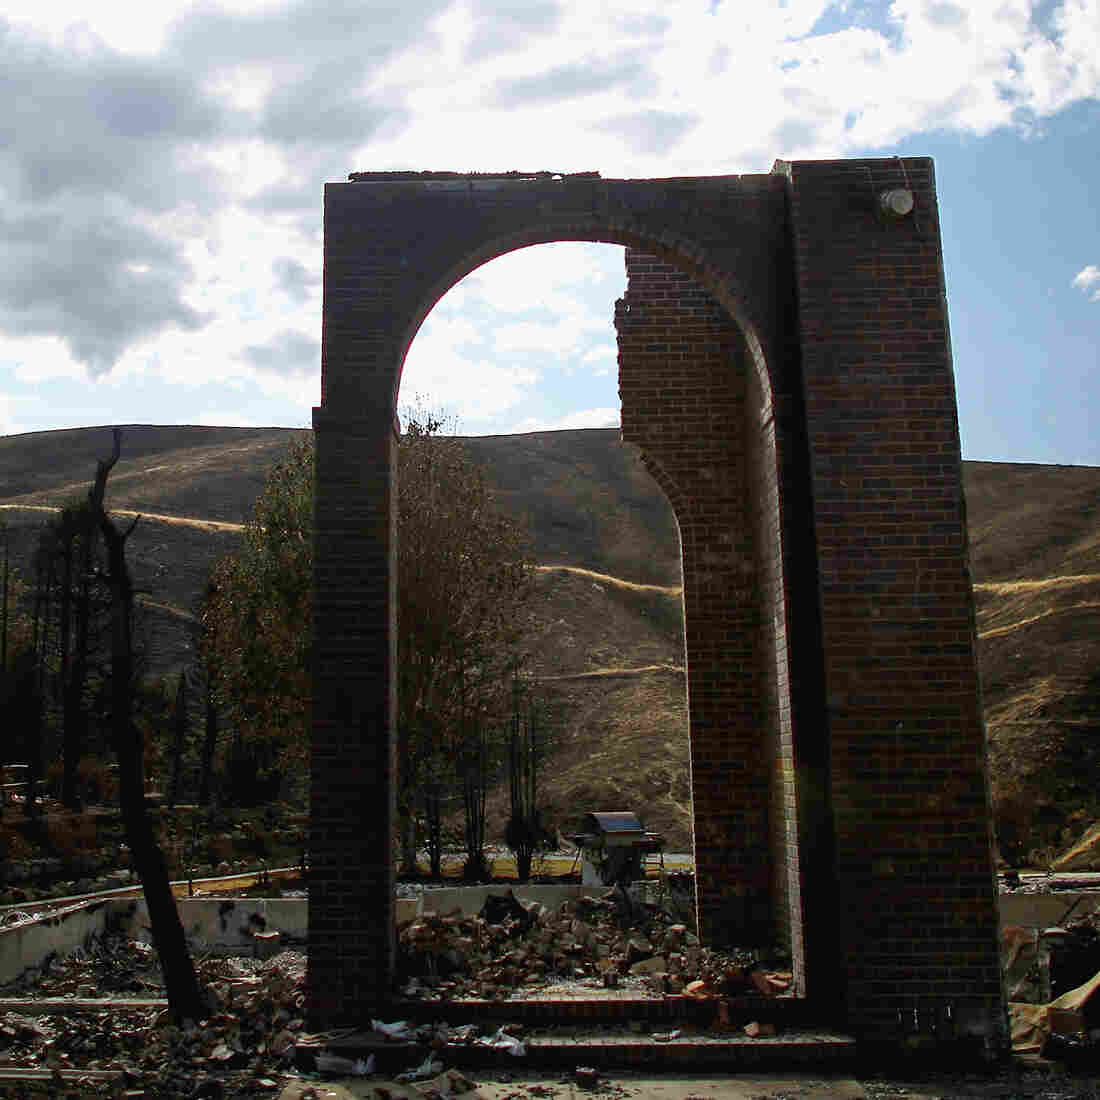 A wildfire raced through the neighborhood of Broadview in Wenatchee, Wash., destroying numerous homes and apple-processing facilities. Fire managers are worried that parts of Washington state are years behind other places in the West when it comes to fire mitigation and prevention.